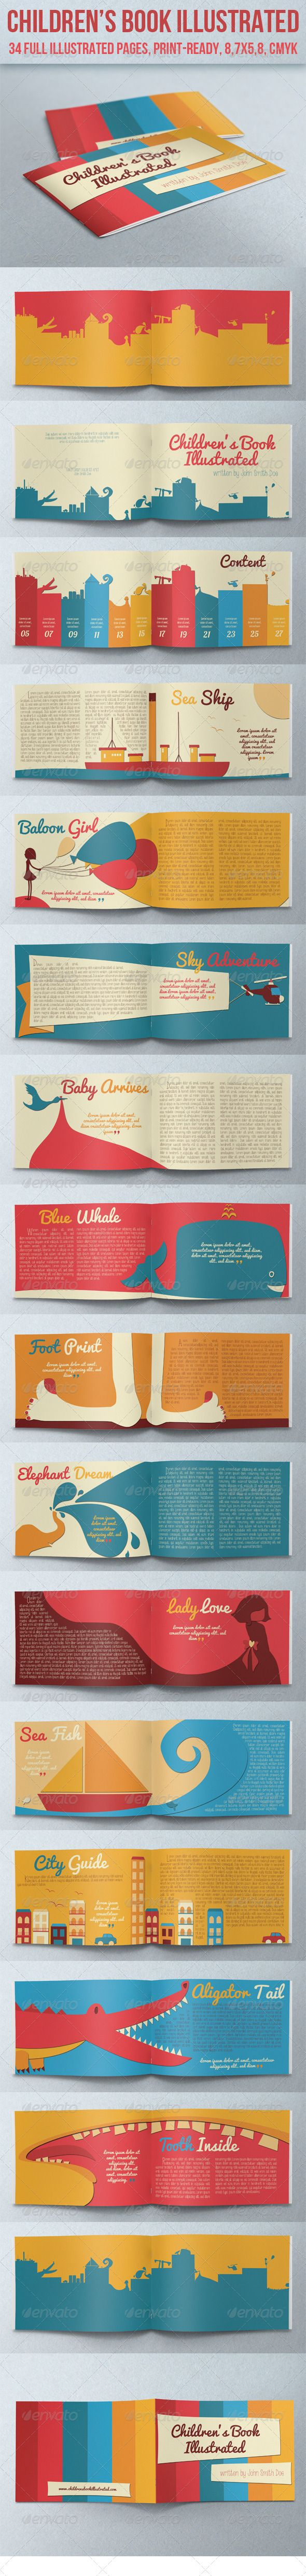 Children's Book Illustrated | GraphicRiver